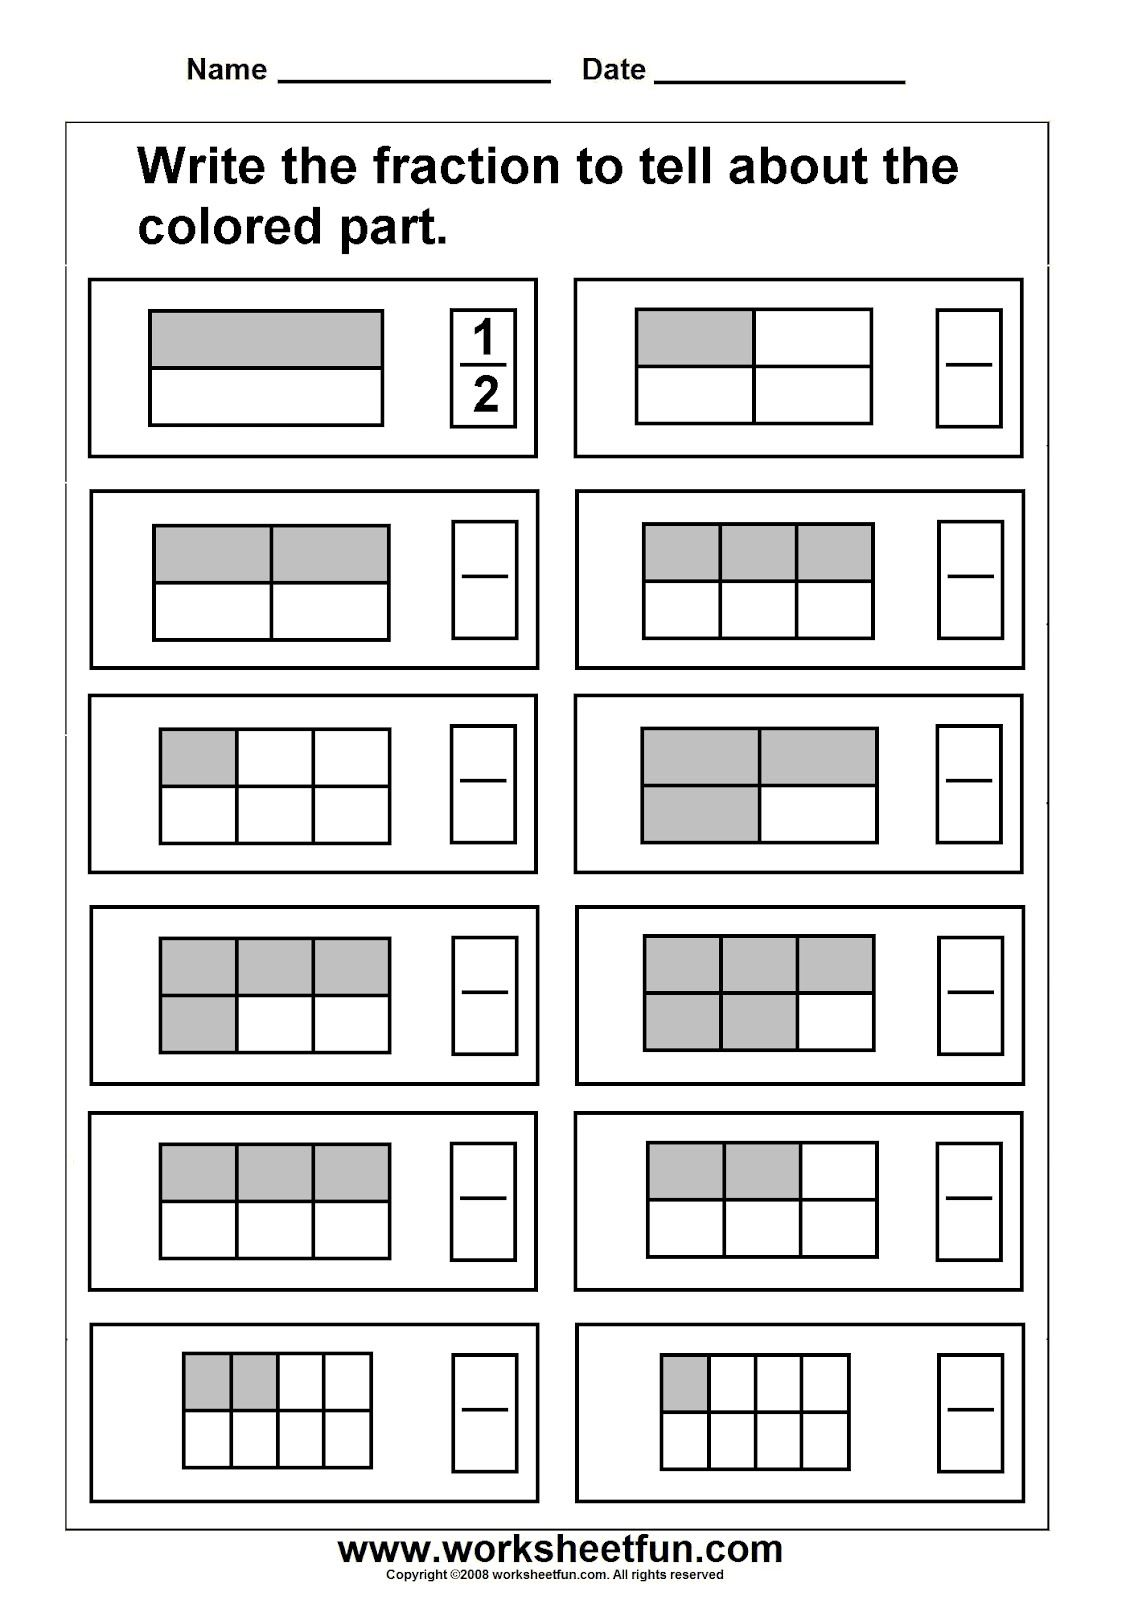 writing fractions great for showing on doc camera math fractions worksheets fractions. Black Bedroom Furniture Sets. Home Design Ideas